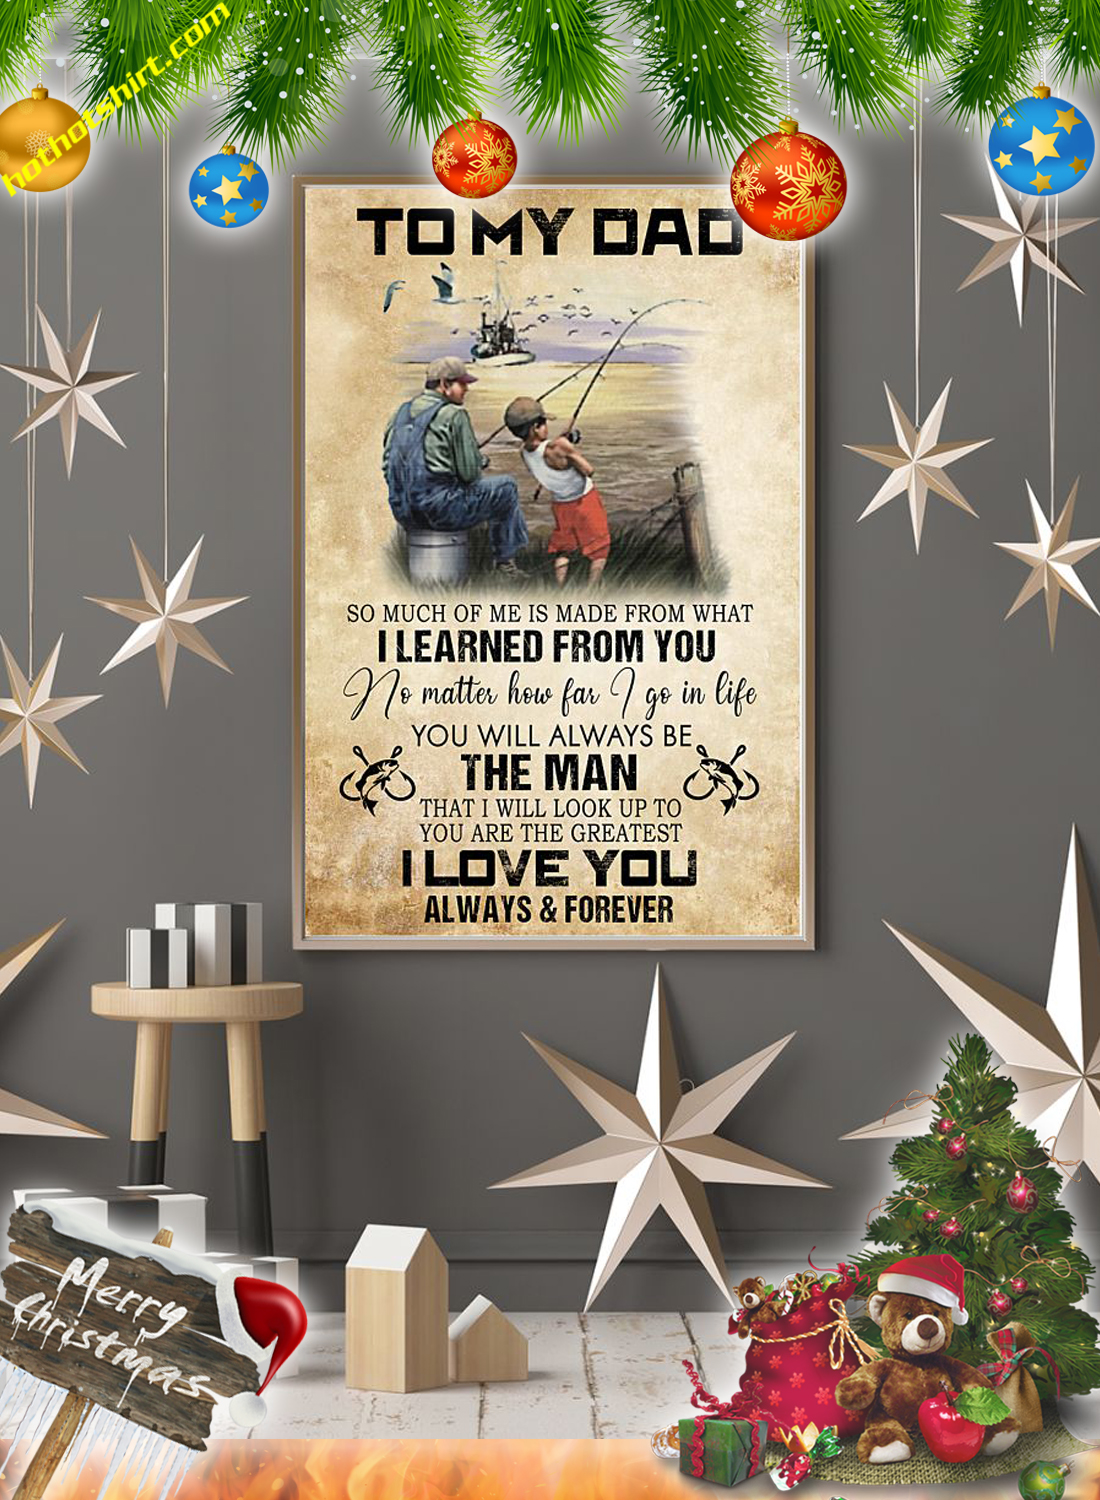 Fishing To my dad canvas prints and poster 3